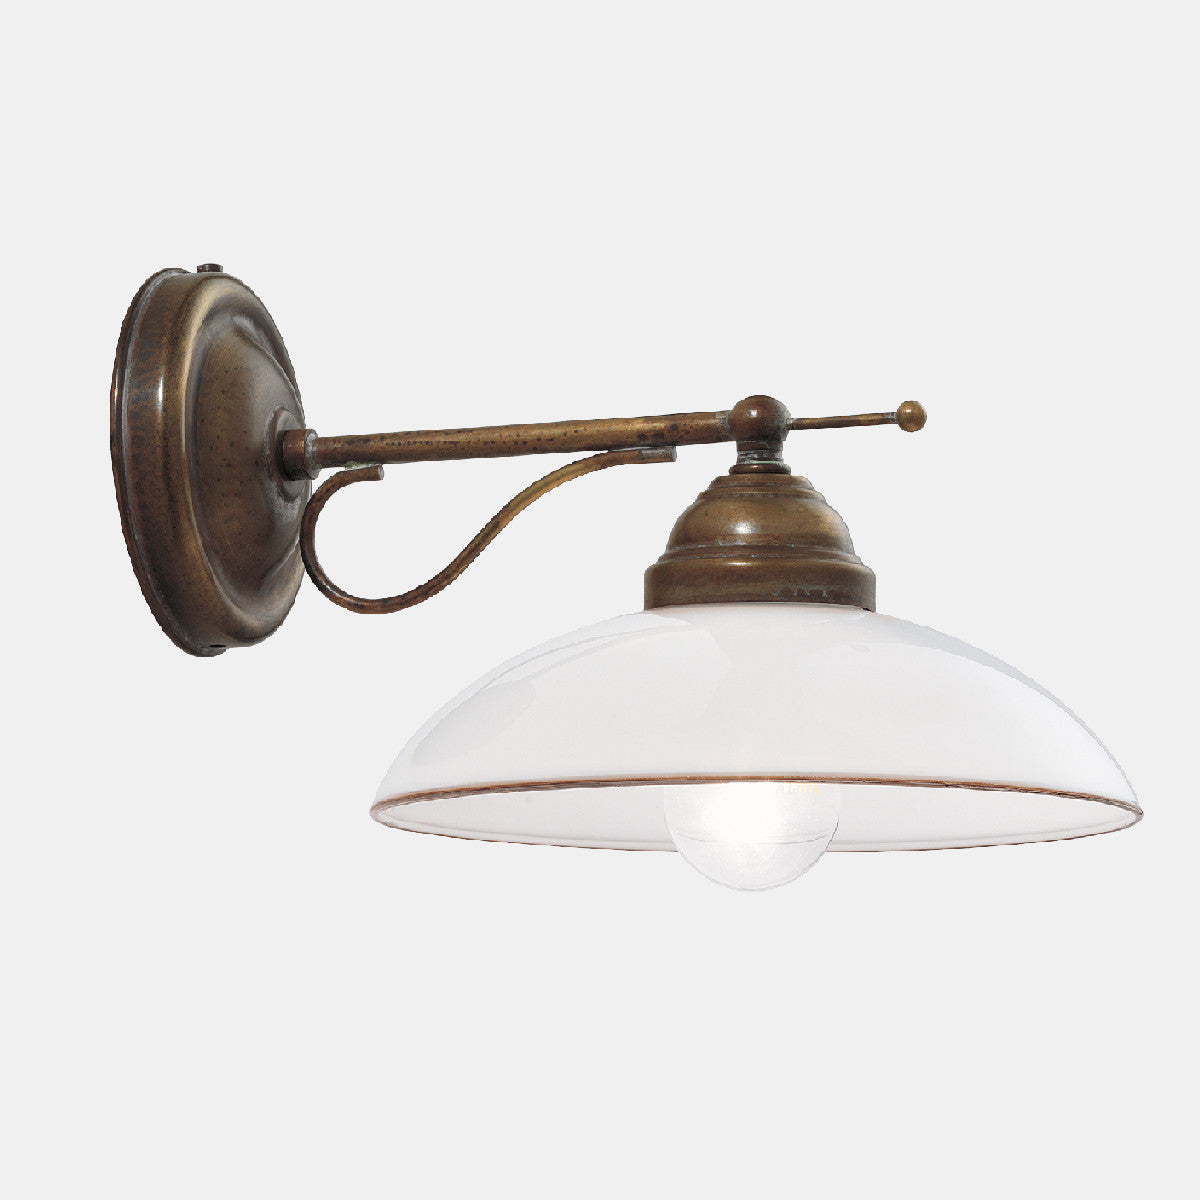 Il Fanale COUNTRY Wall Light 082.14.OV | touchGOODS